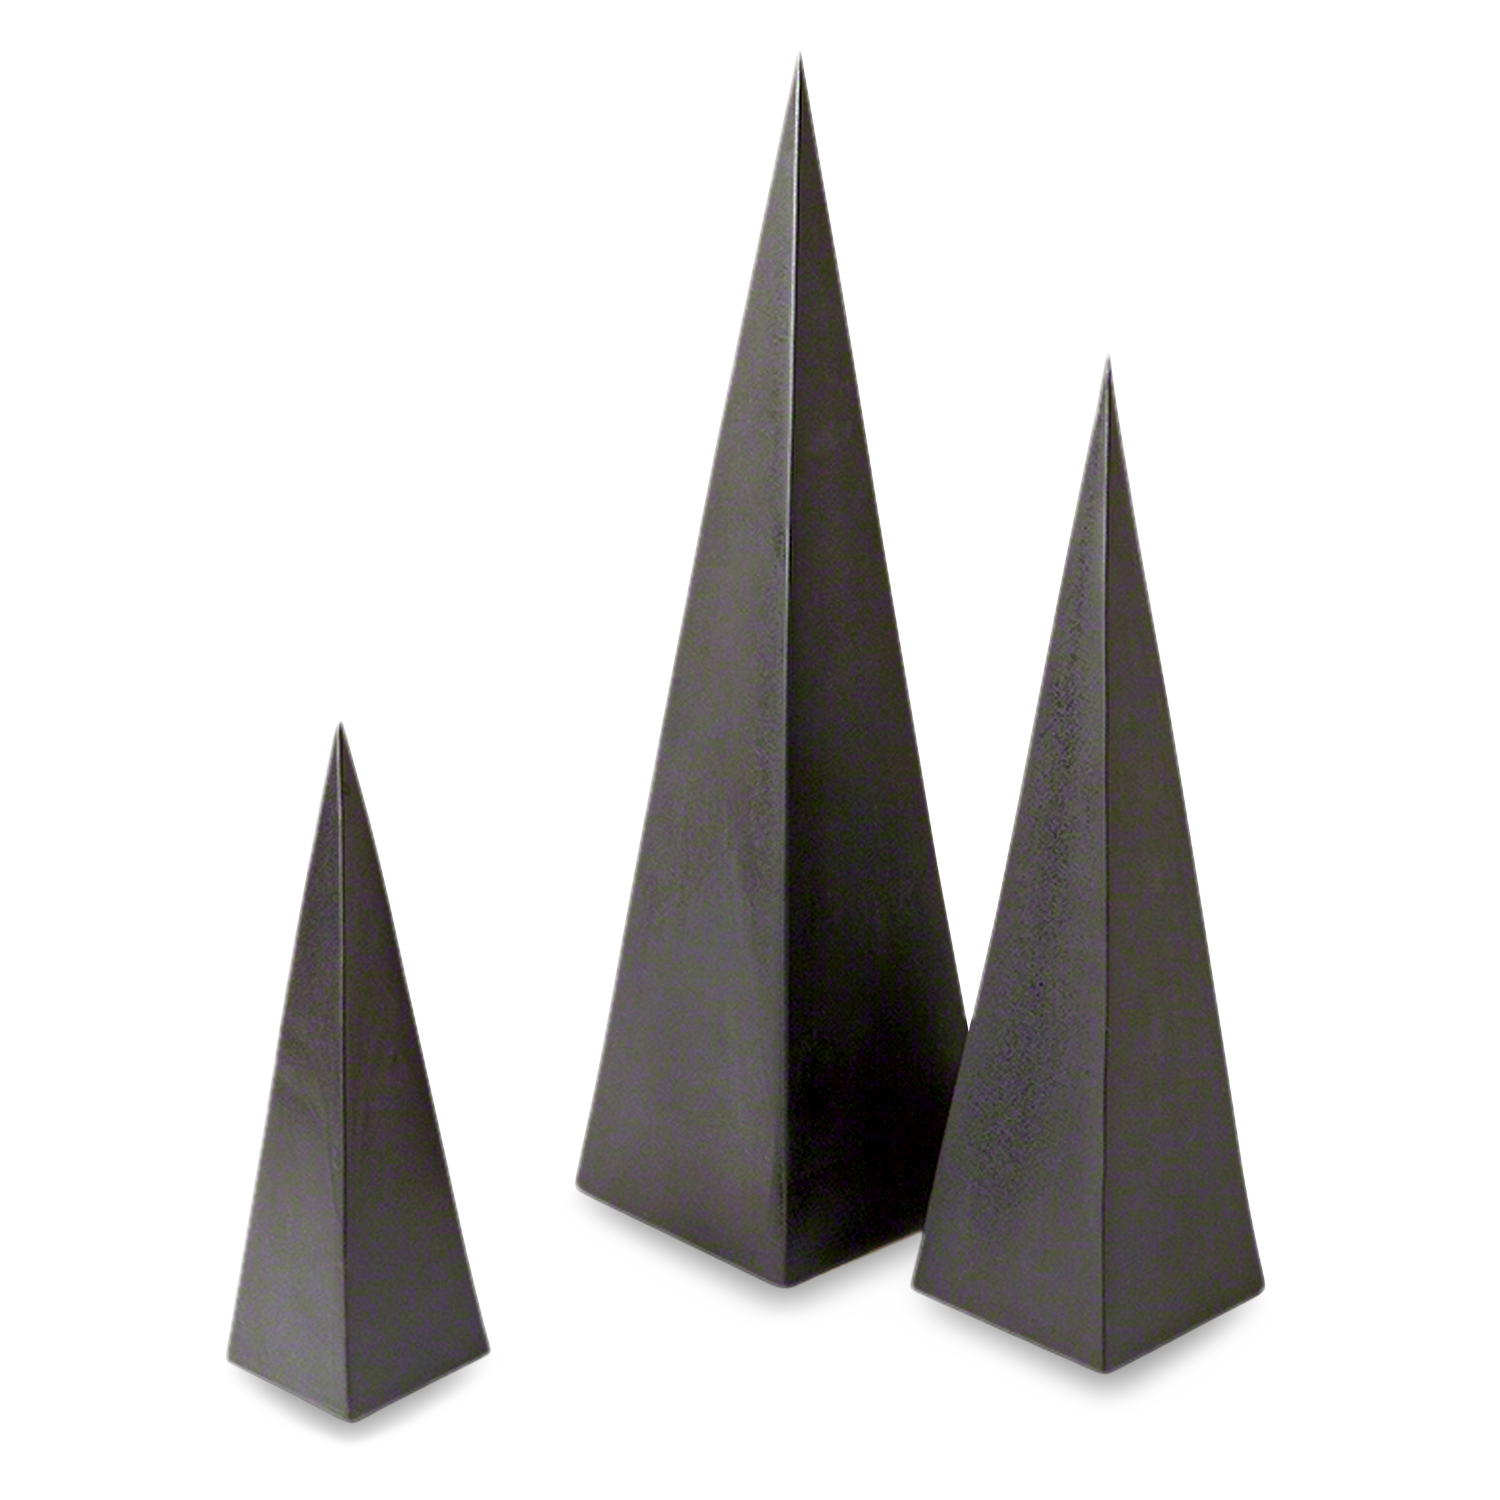 Pyramid Object Black